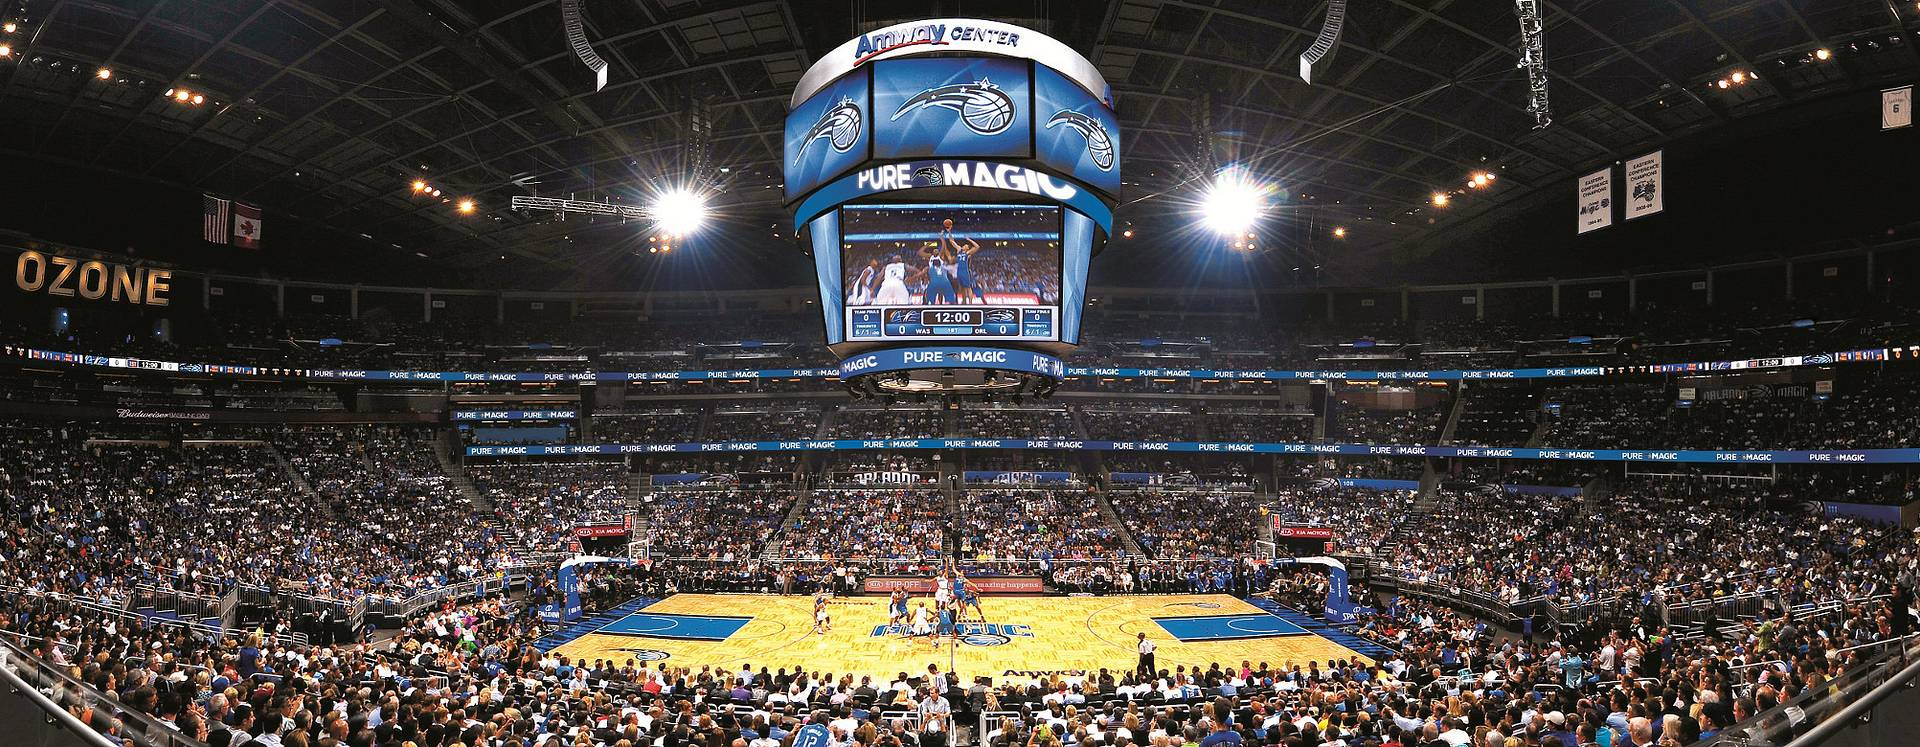 Orlando Magic playing in the Amway Center at the start of a game.